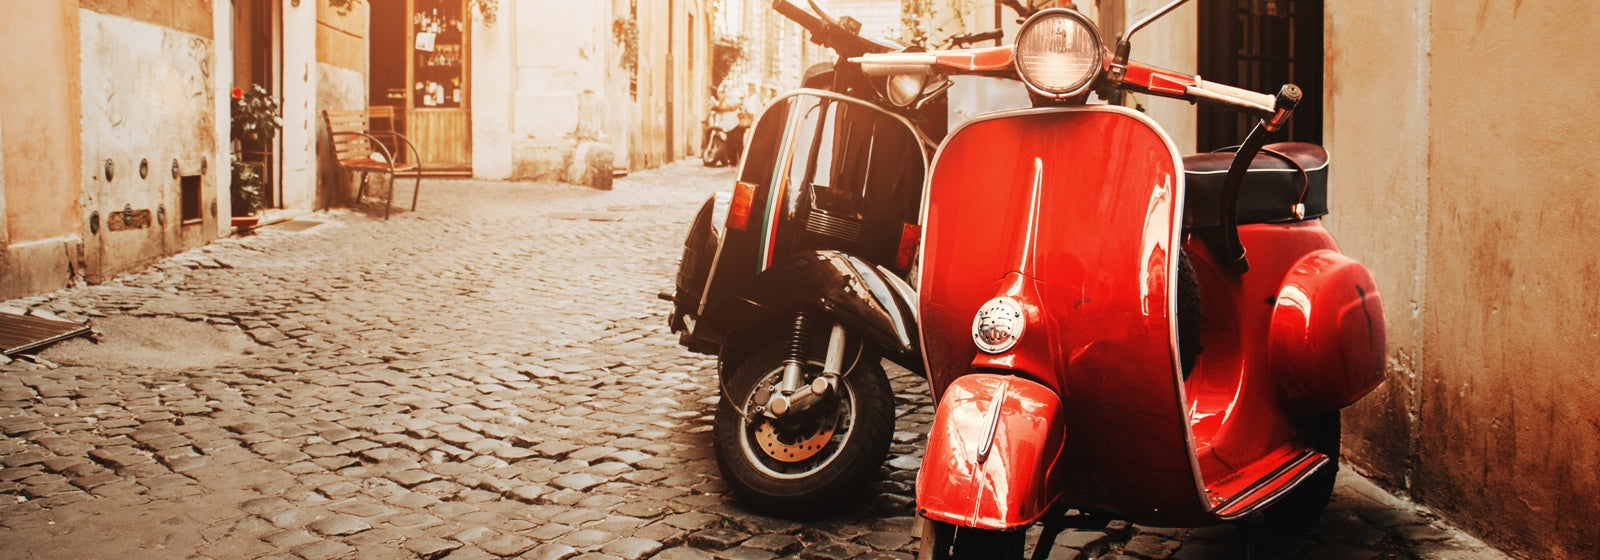 Beedspeed | Scooter Parts & Spares For Lambretta, Vespa & More